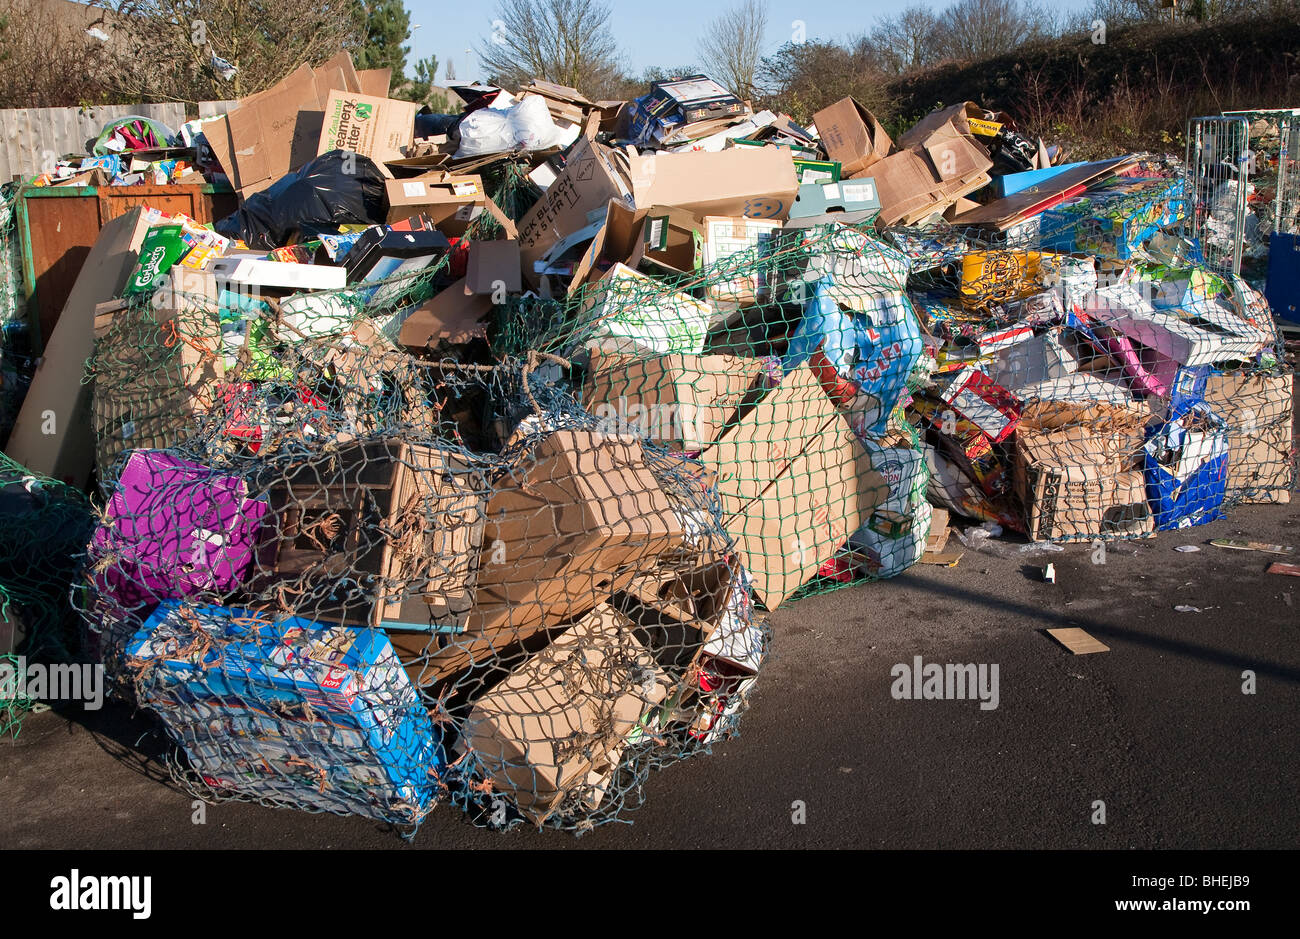 Cardboard waste at recycling collection station in car par UK - Stock Image